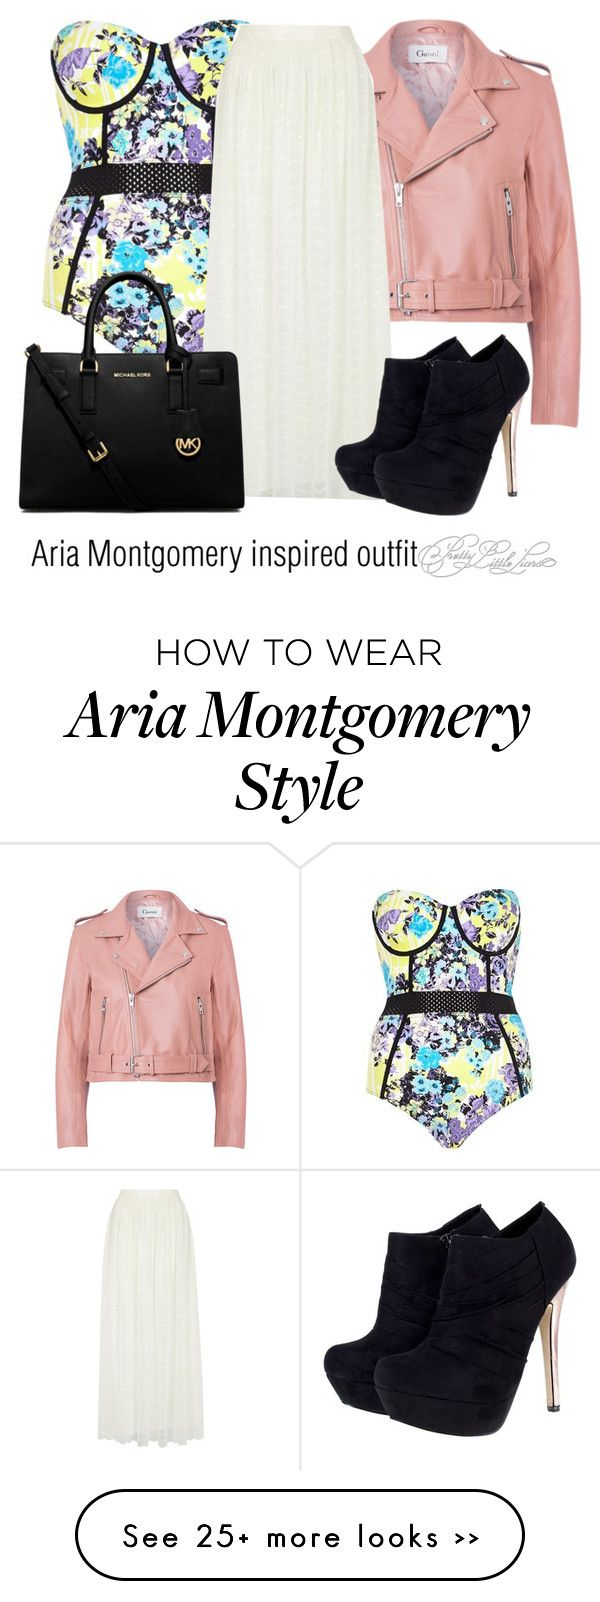 """Aria Montgomery inspired outfit/PLL"" by tvdsarahmichele on Polyvore"